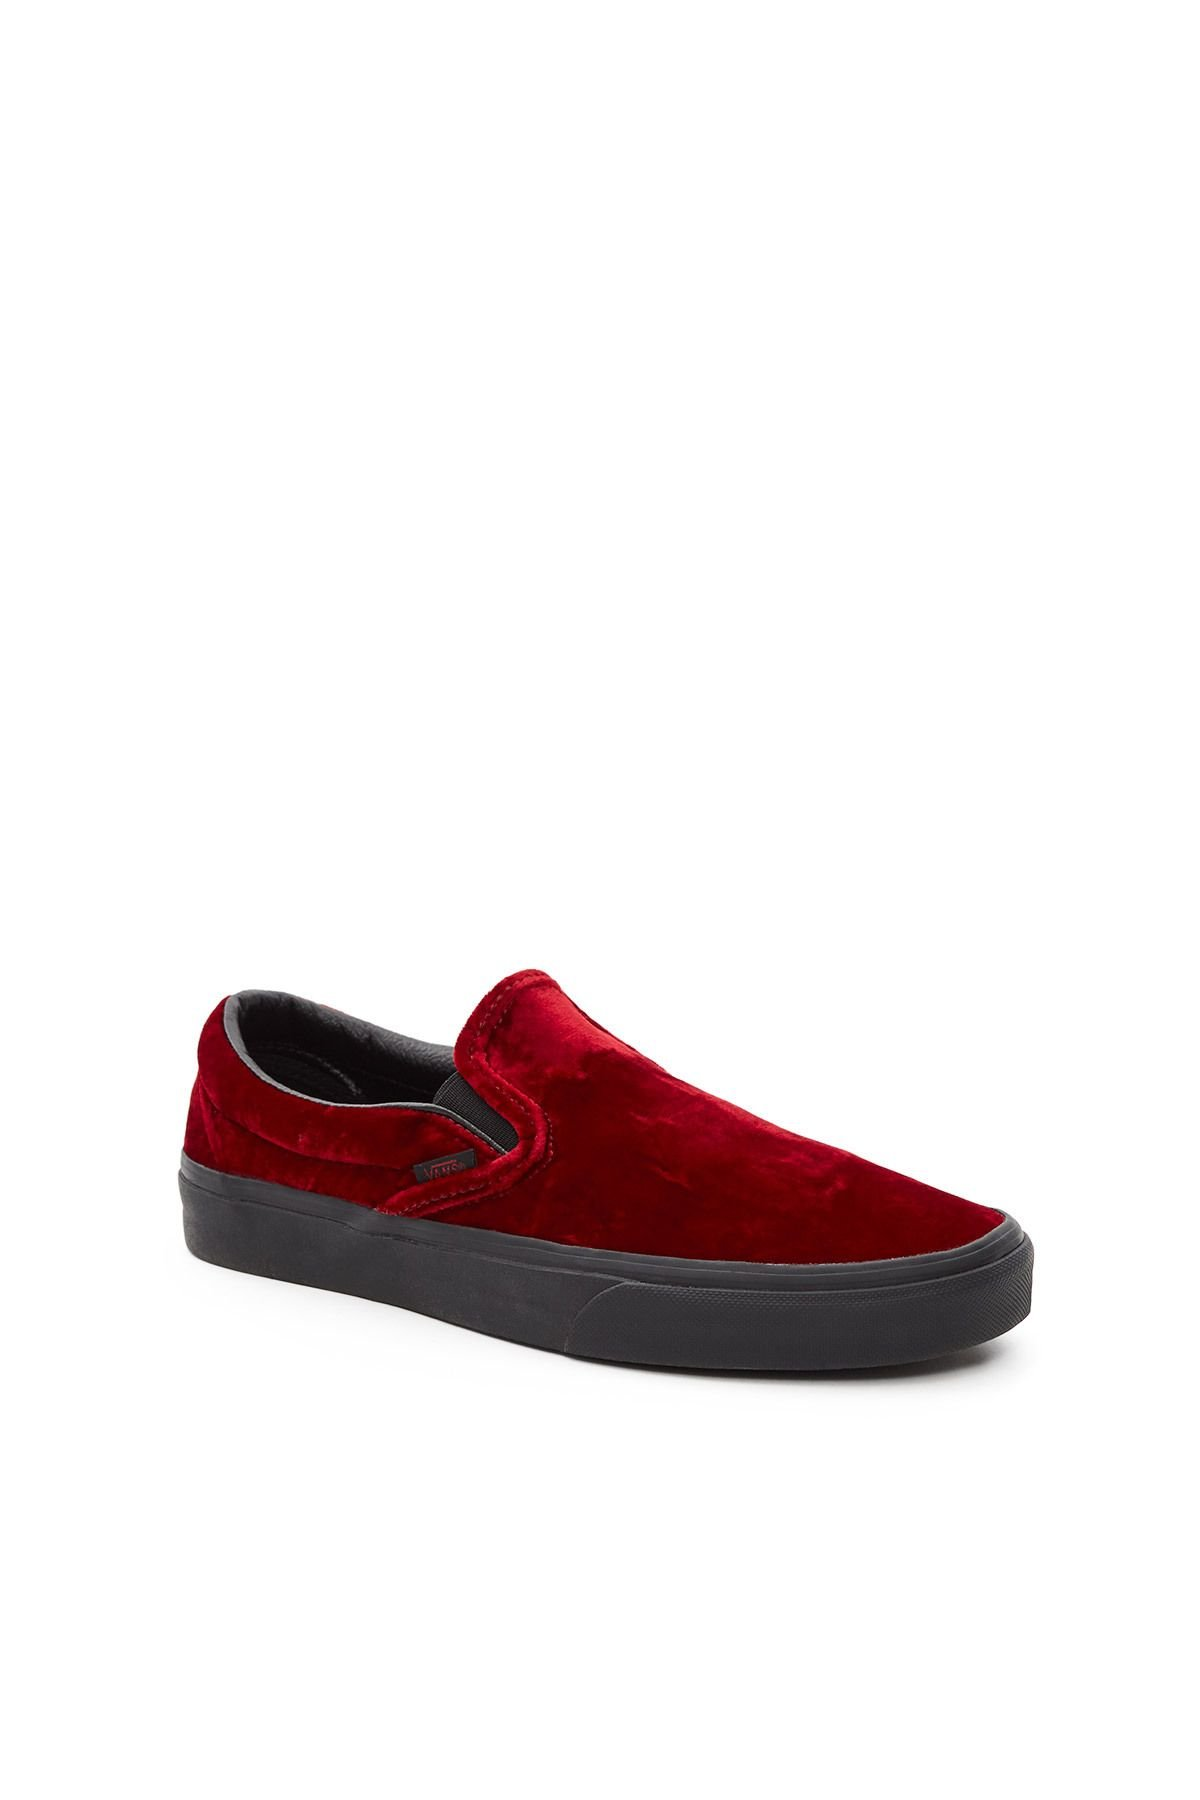 18a3516c29e6 Vans Classic Slip on Womens Unisex Velvet Oxblood Red Black Shoes ...